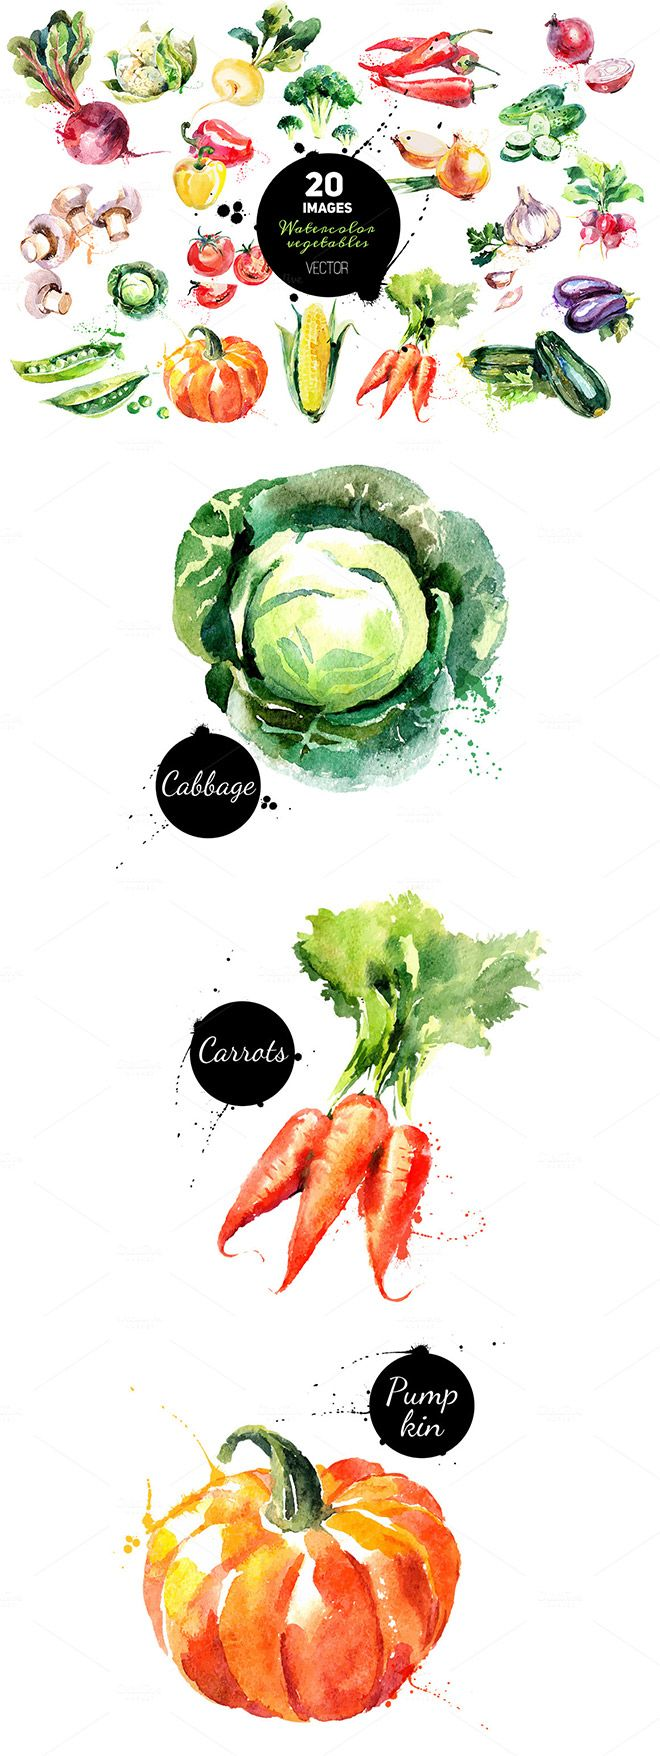 Set of 20 hand drawn watercolor vegetables. Traced vector illustrations and jpegs.